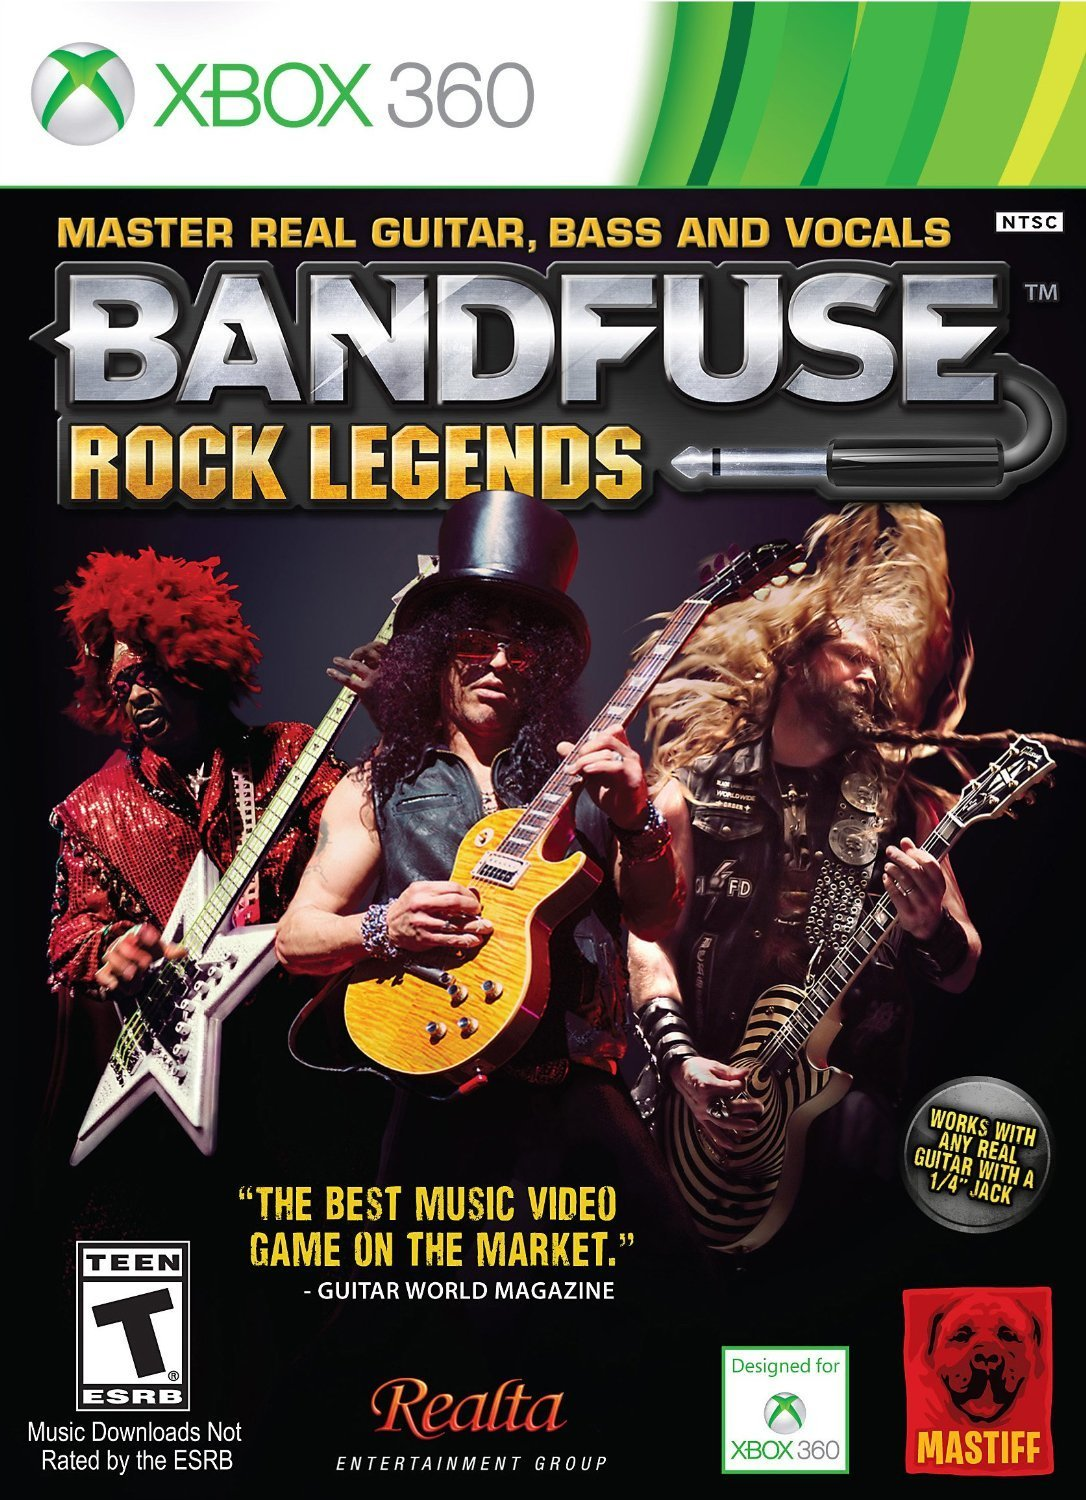 BandFuse: Rock Legends Artist Pack